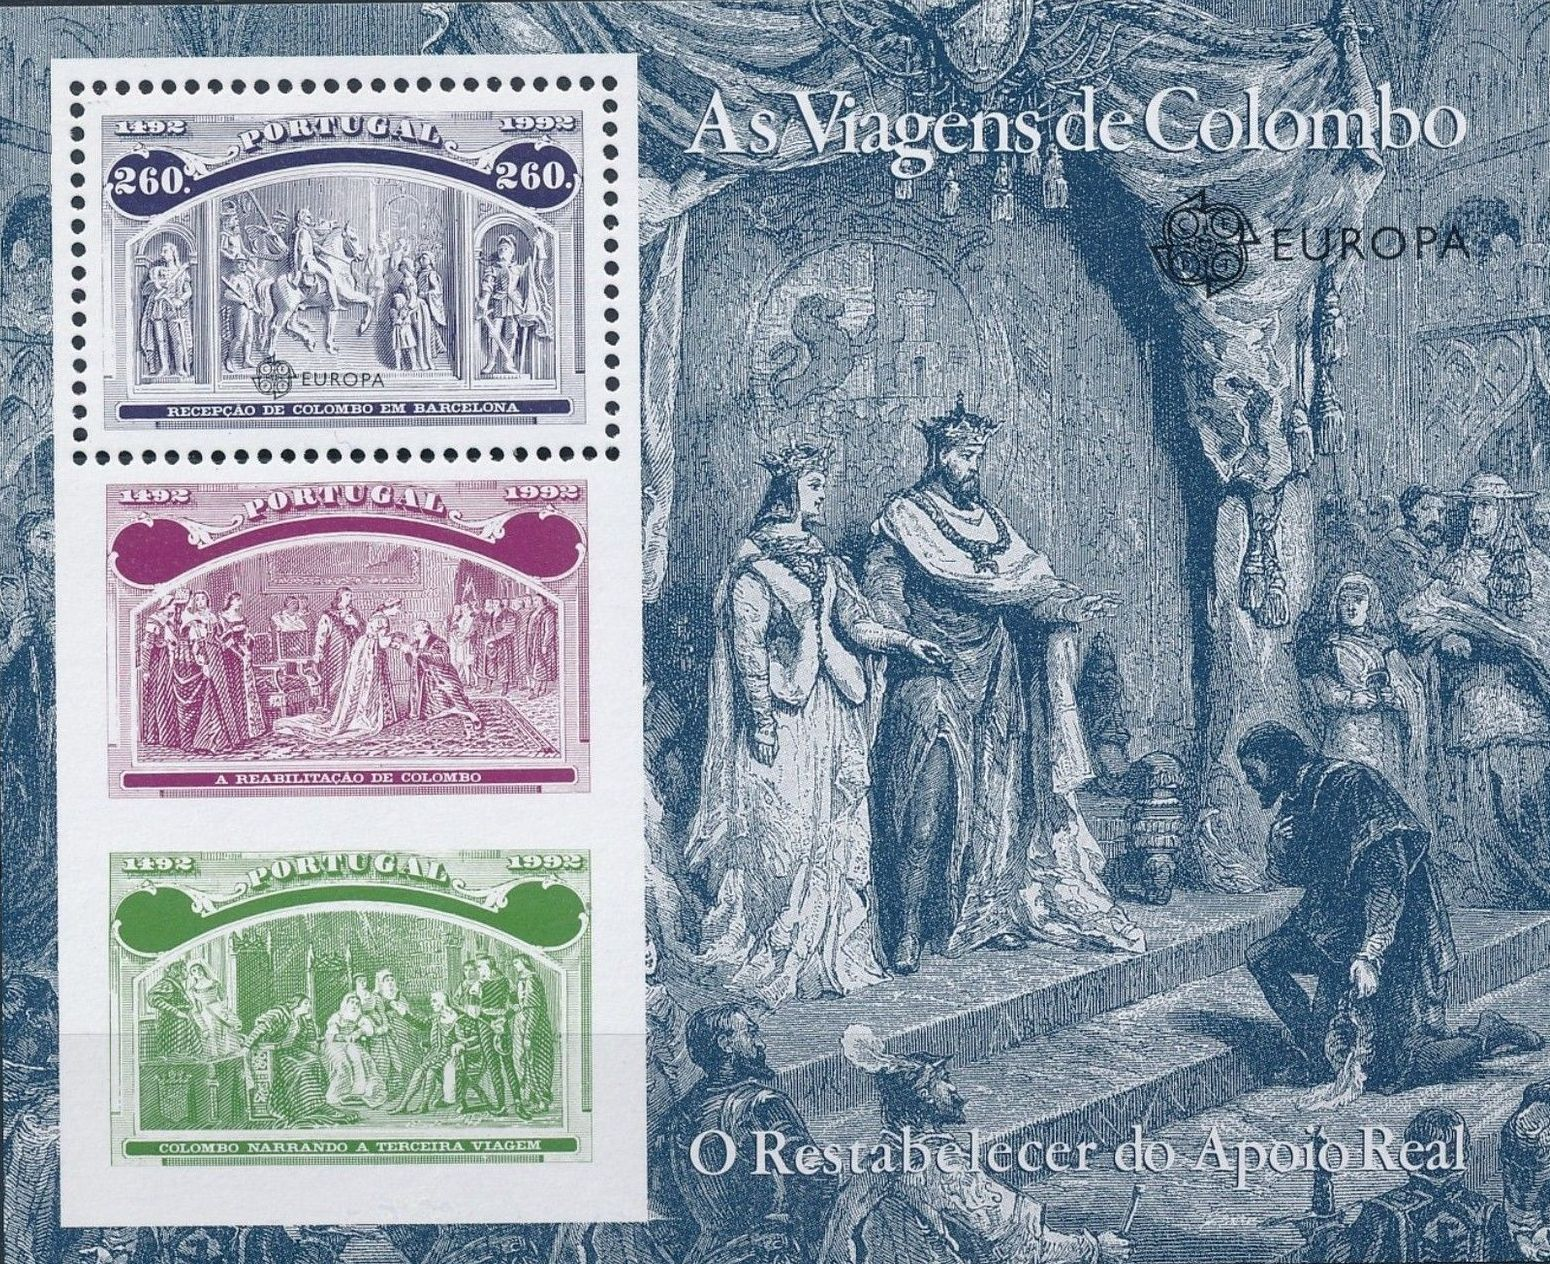 Portugal 1992 500th Anniversary of the Discovery of America SSe.jpg